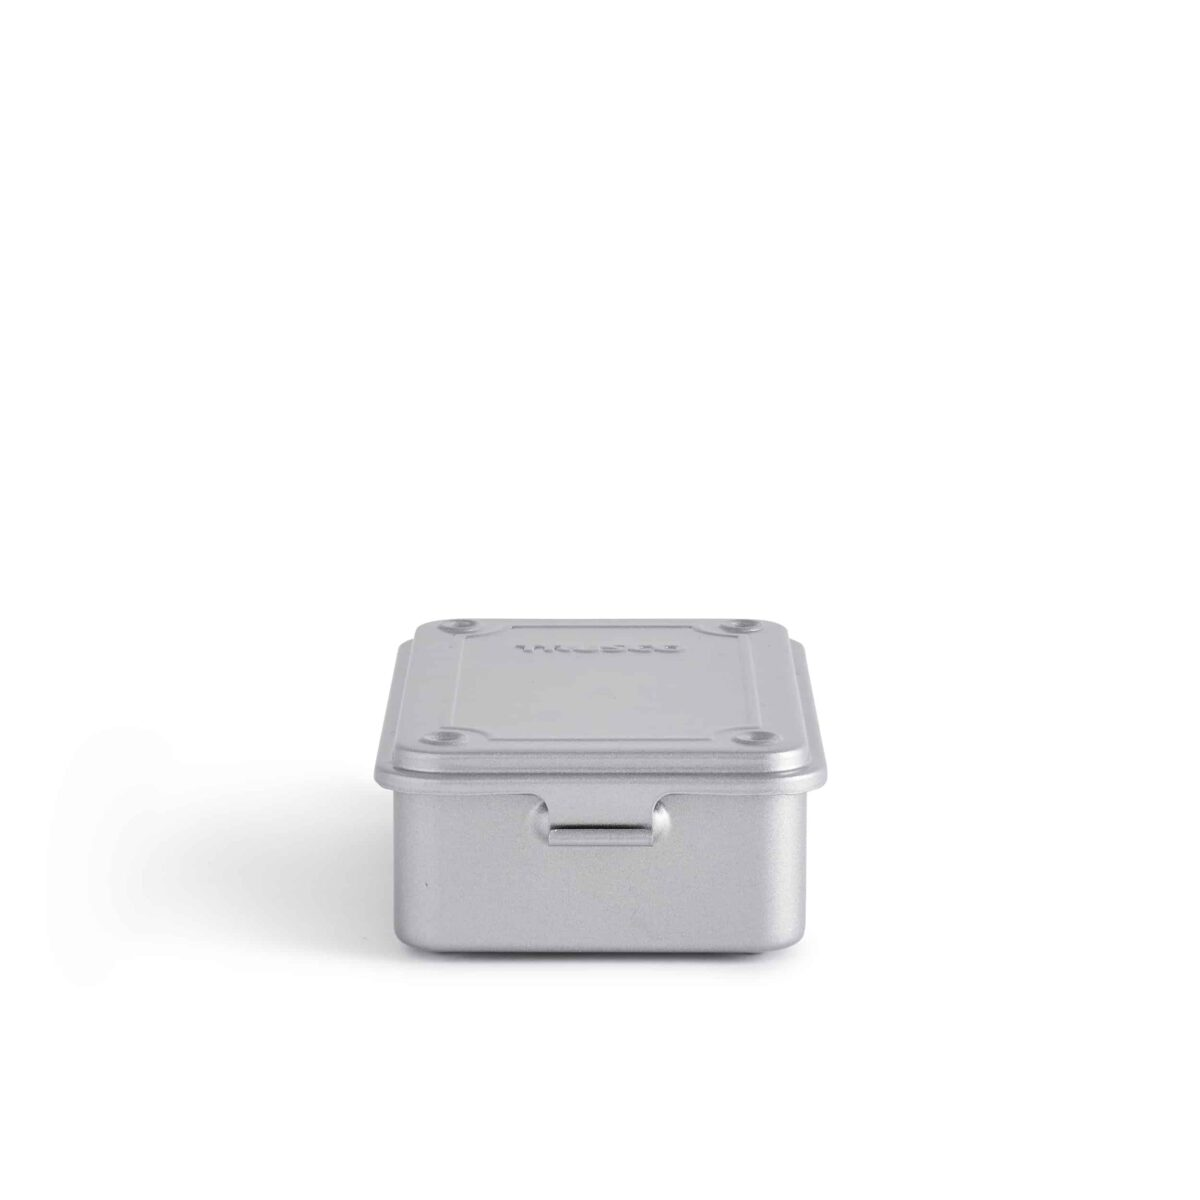 Trusco Component Box Silver Small – Another-Country-Photo Credit Yeshen Venema -web ready-21.11.185315